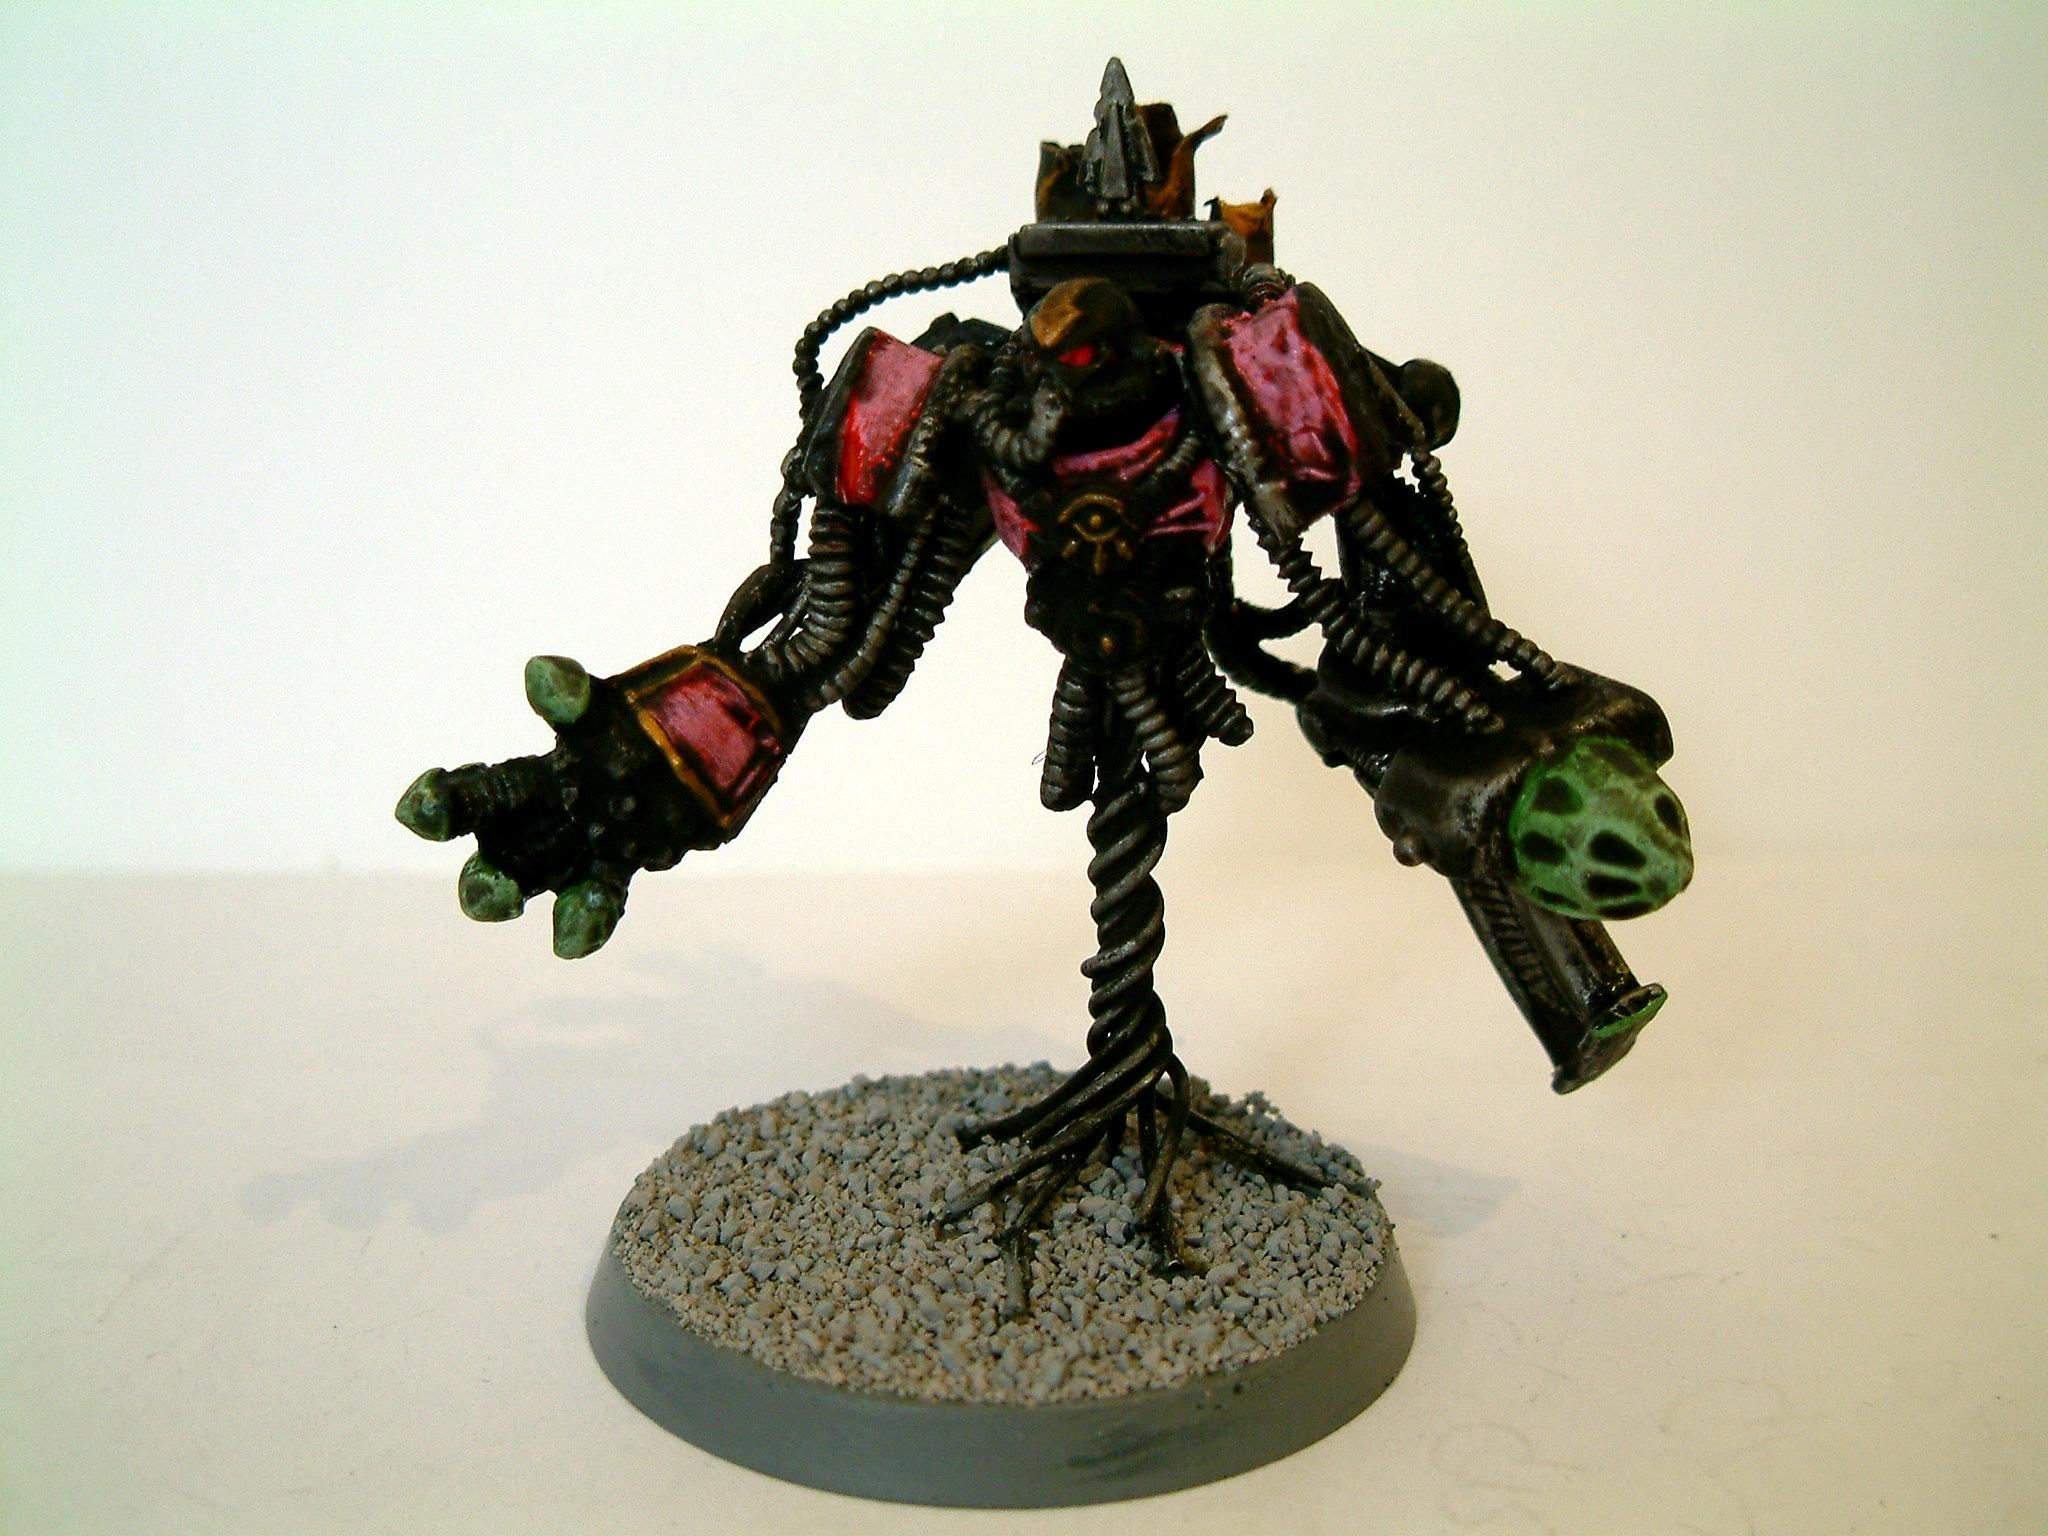 Astartes, Chaos, Classic, Conversion, Noise, Out Of Production, Pink, Slaanesh, Space, Space Marines, Warhammer 40,000